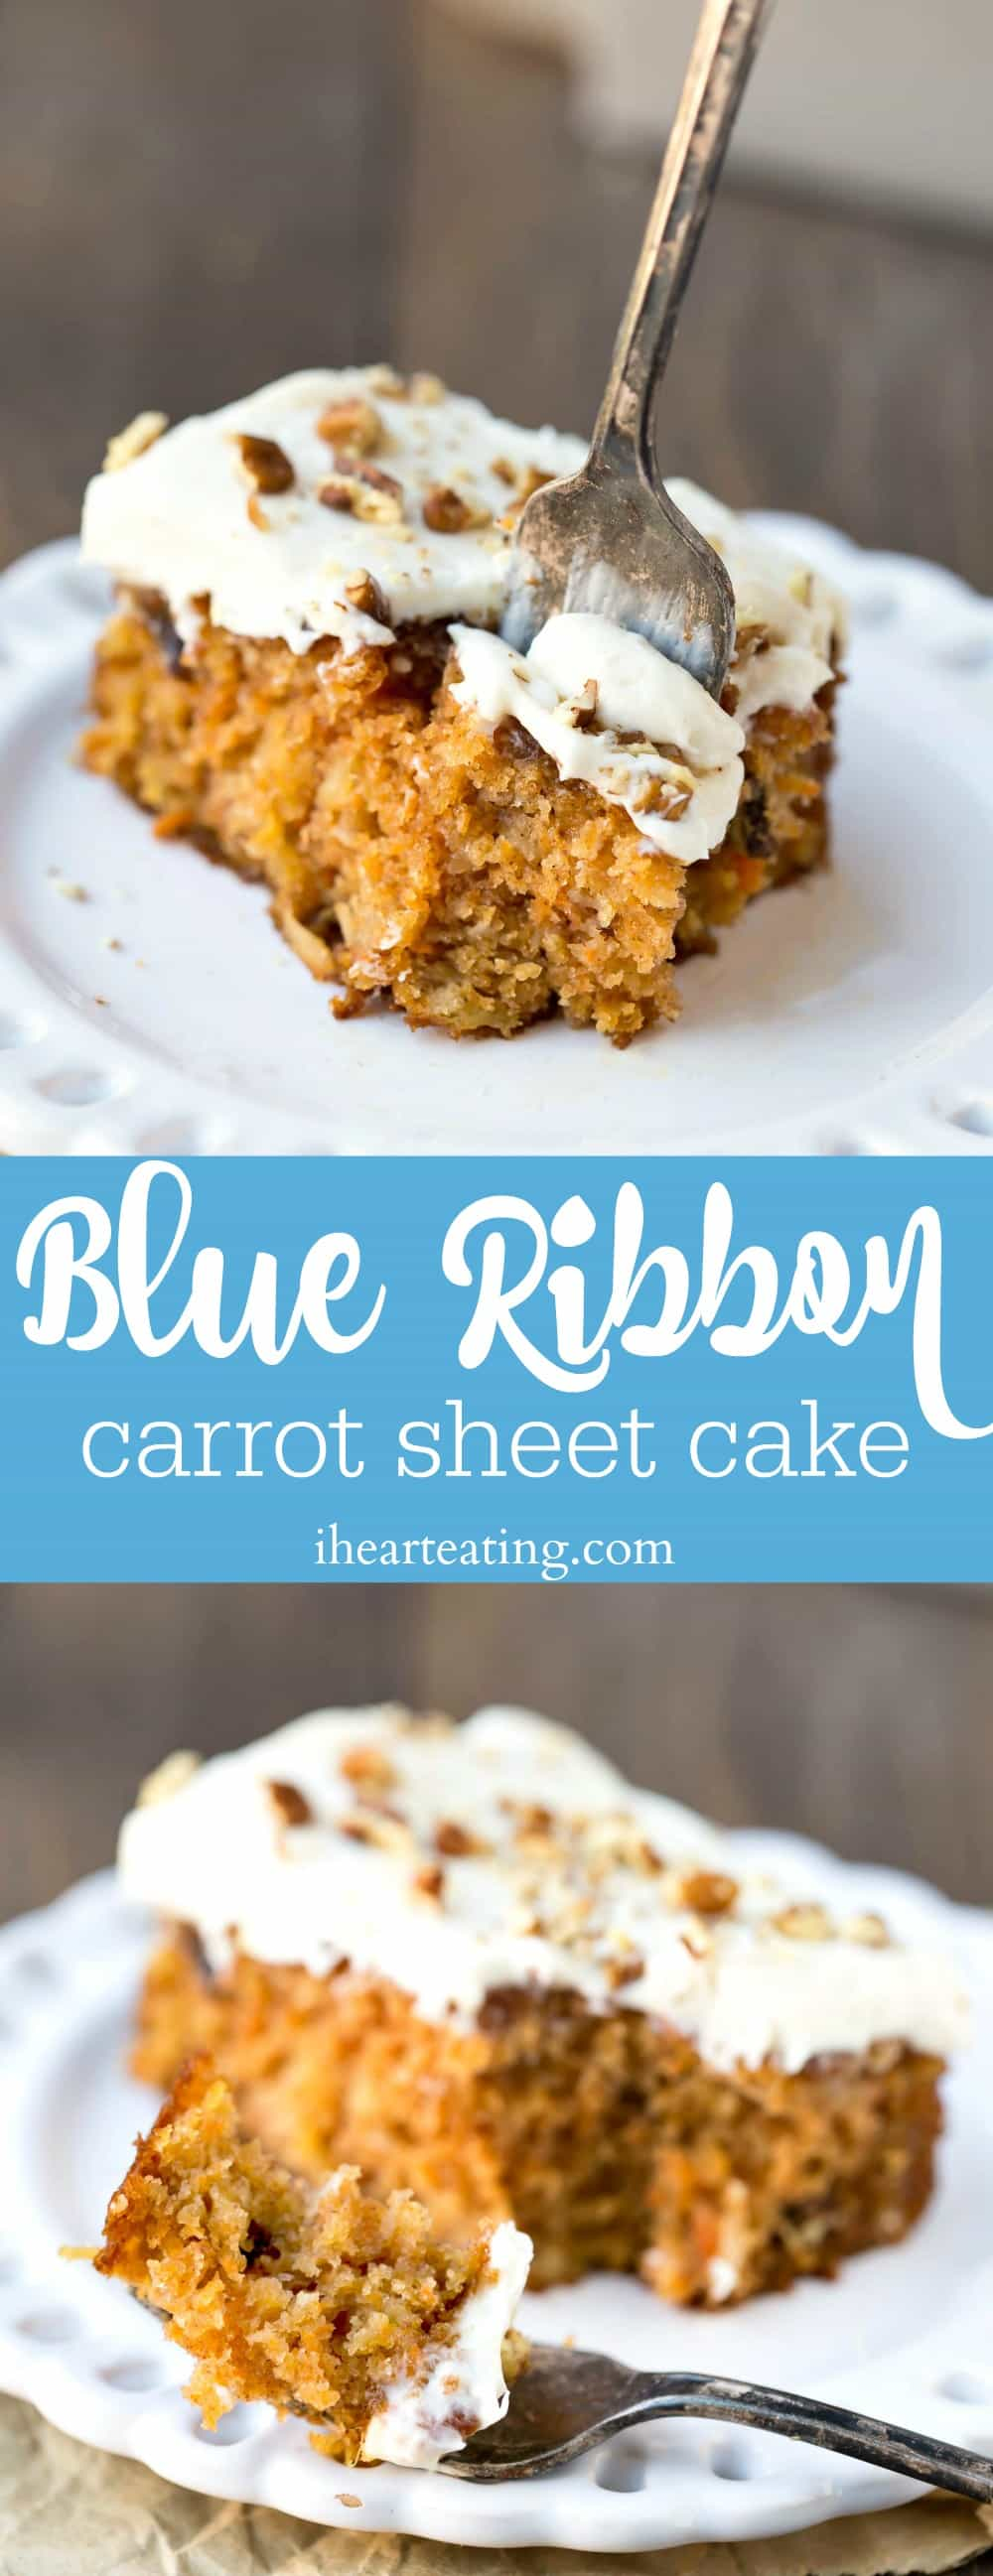 Blue Ribbon Carrot Sheet Cake I Heart Eating